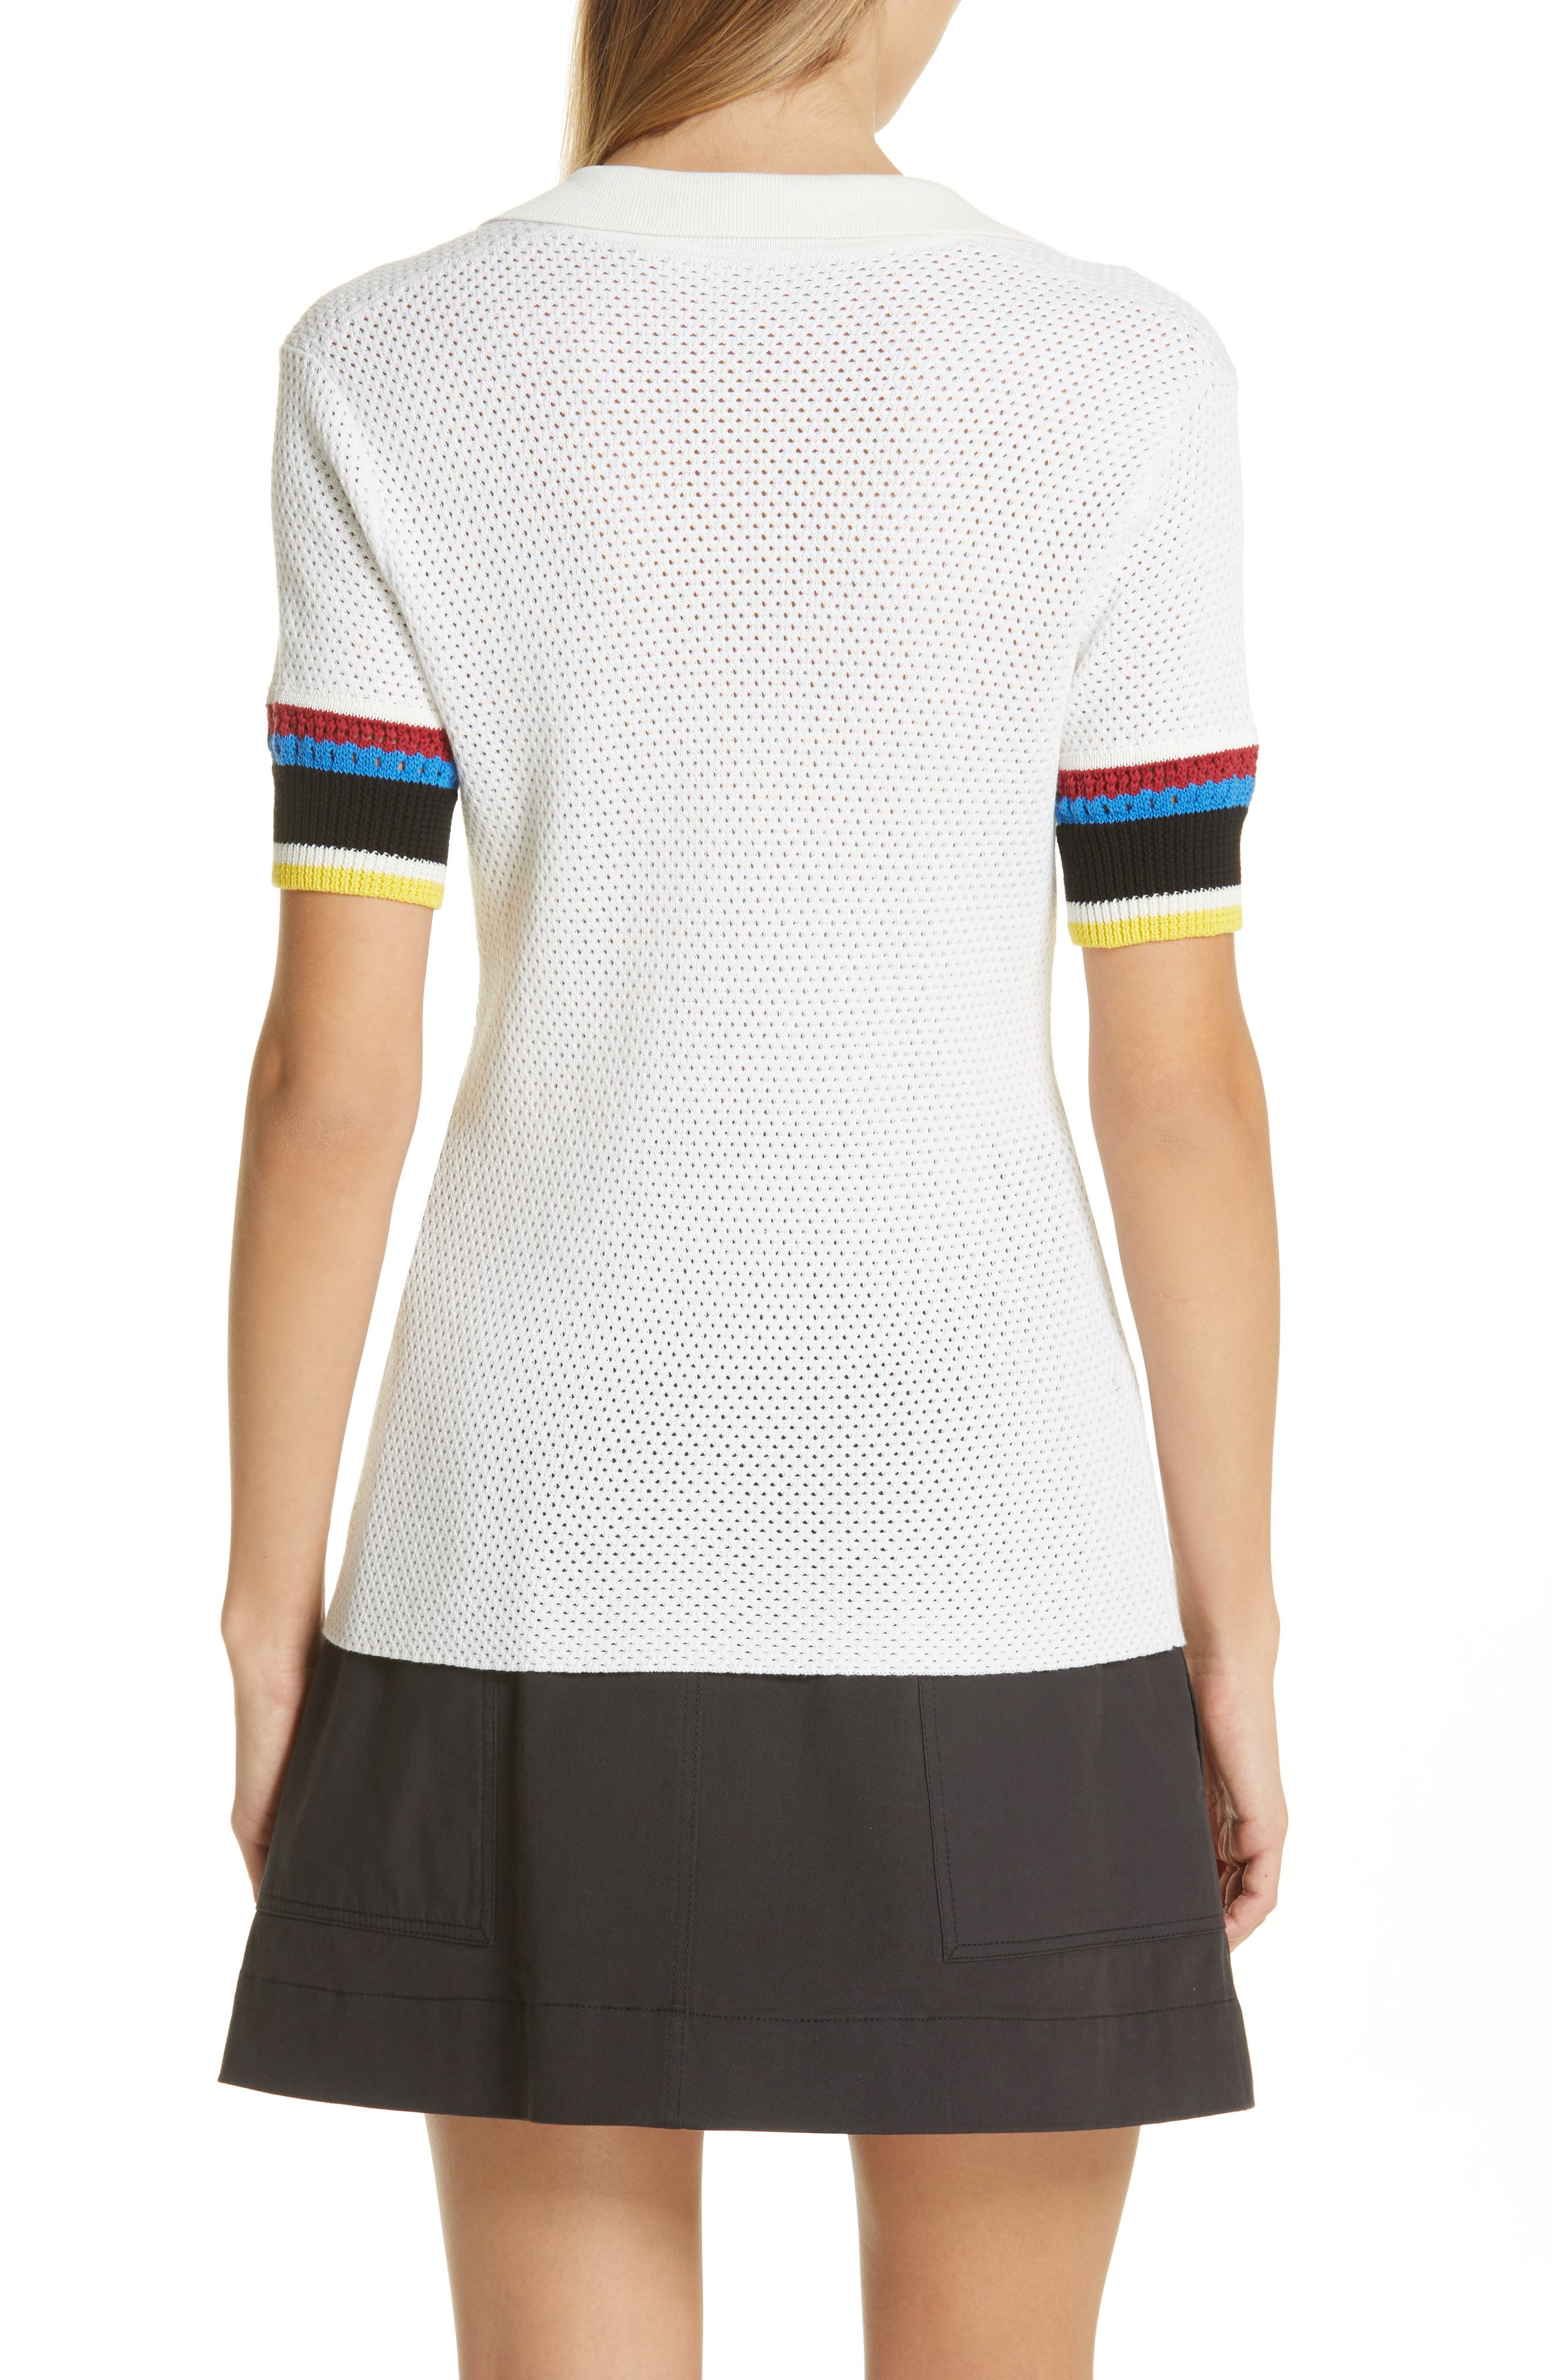 PROENZA SCHOULER, PSWL Stripe Sleeve Polo Top, Alternate thumbnail 2, color, OFF WHITE